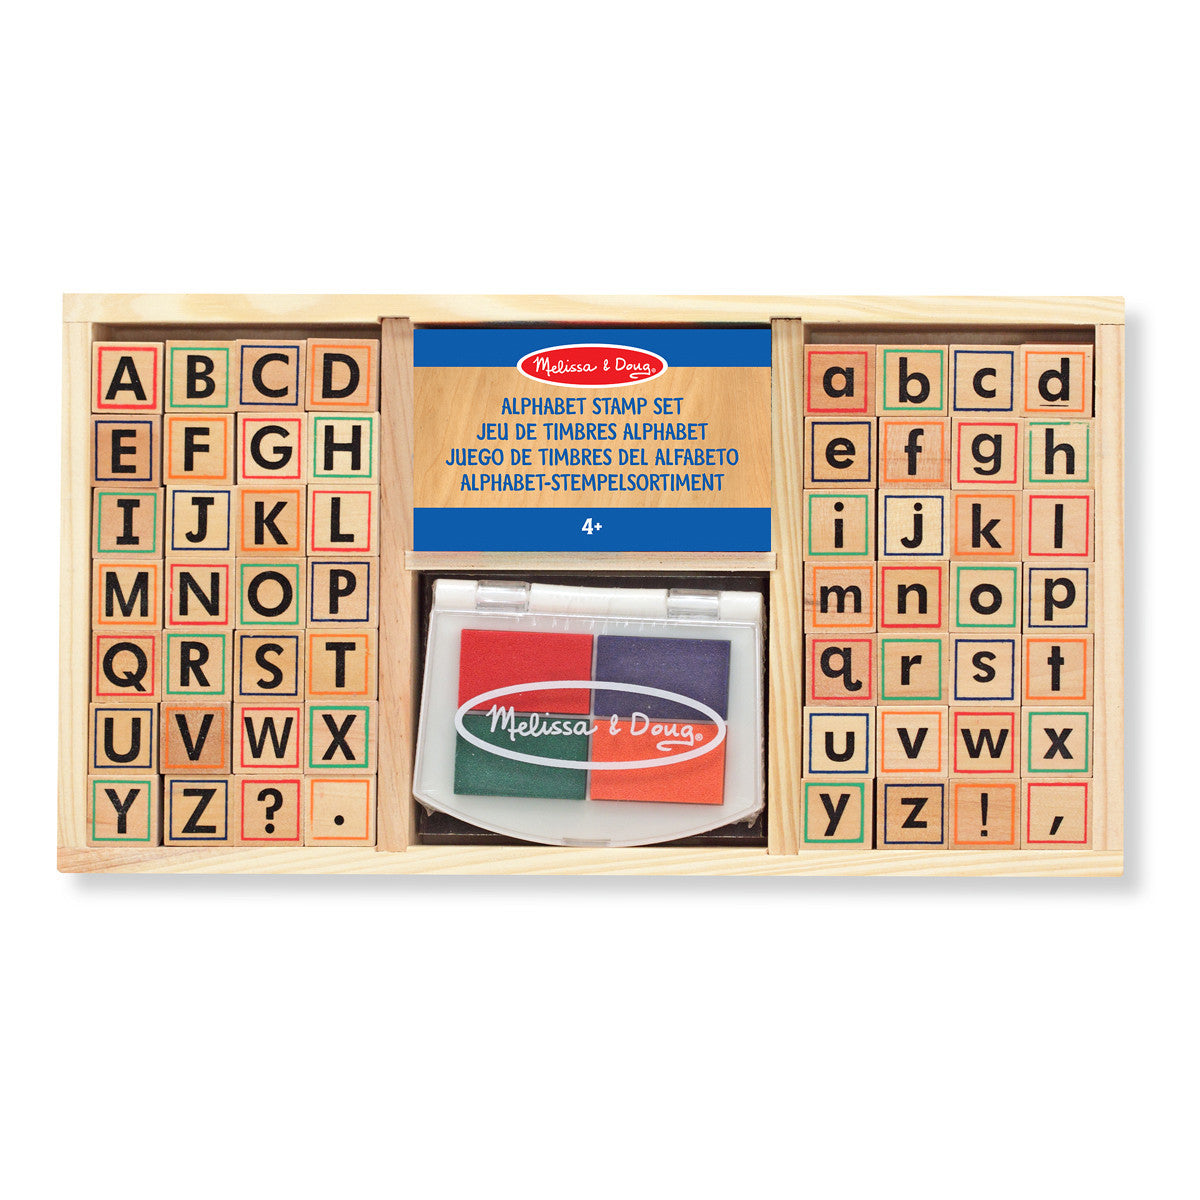 Alphabet Stamp Set